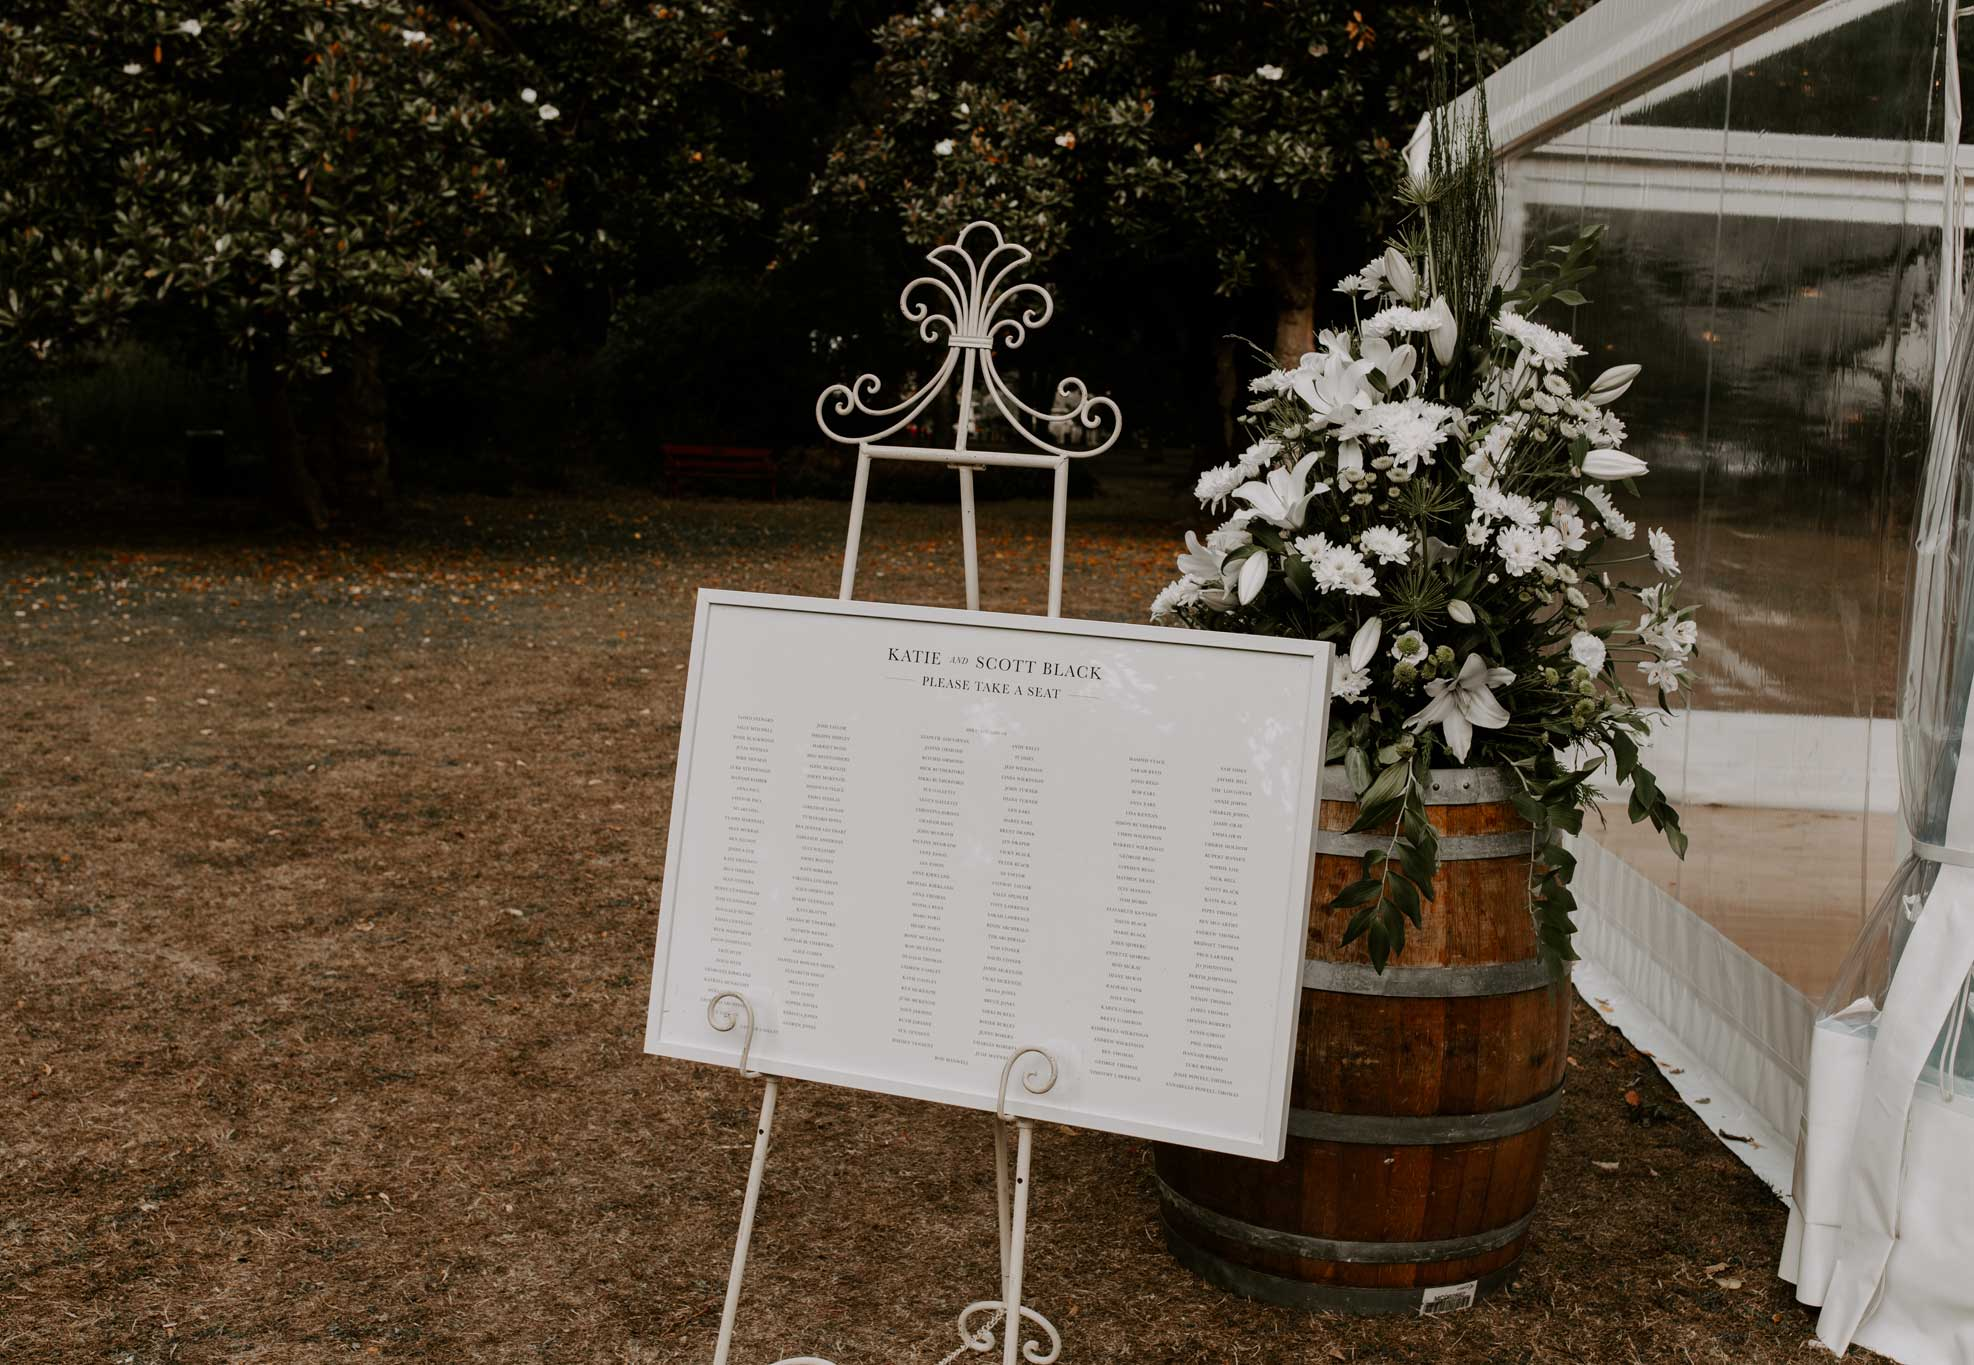 silk-estate-marquee-weddings-and-events-styling-and-hire-decor-signs-2